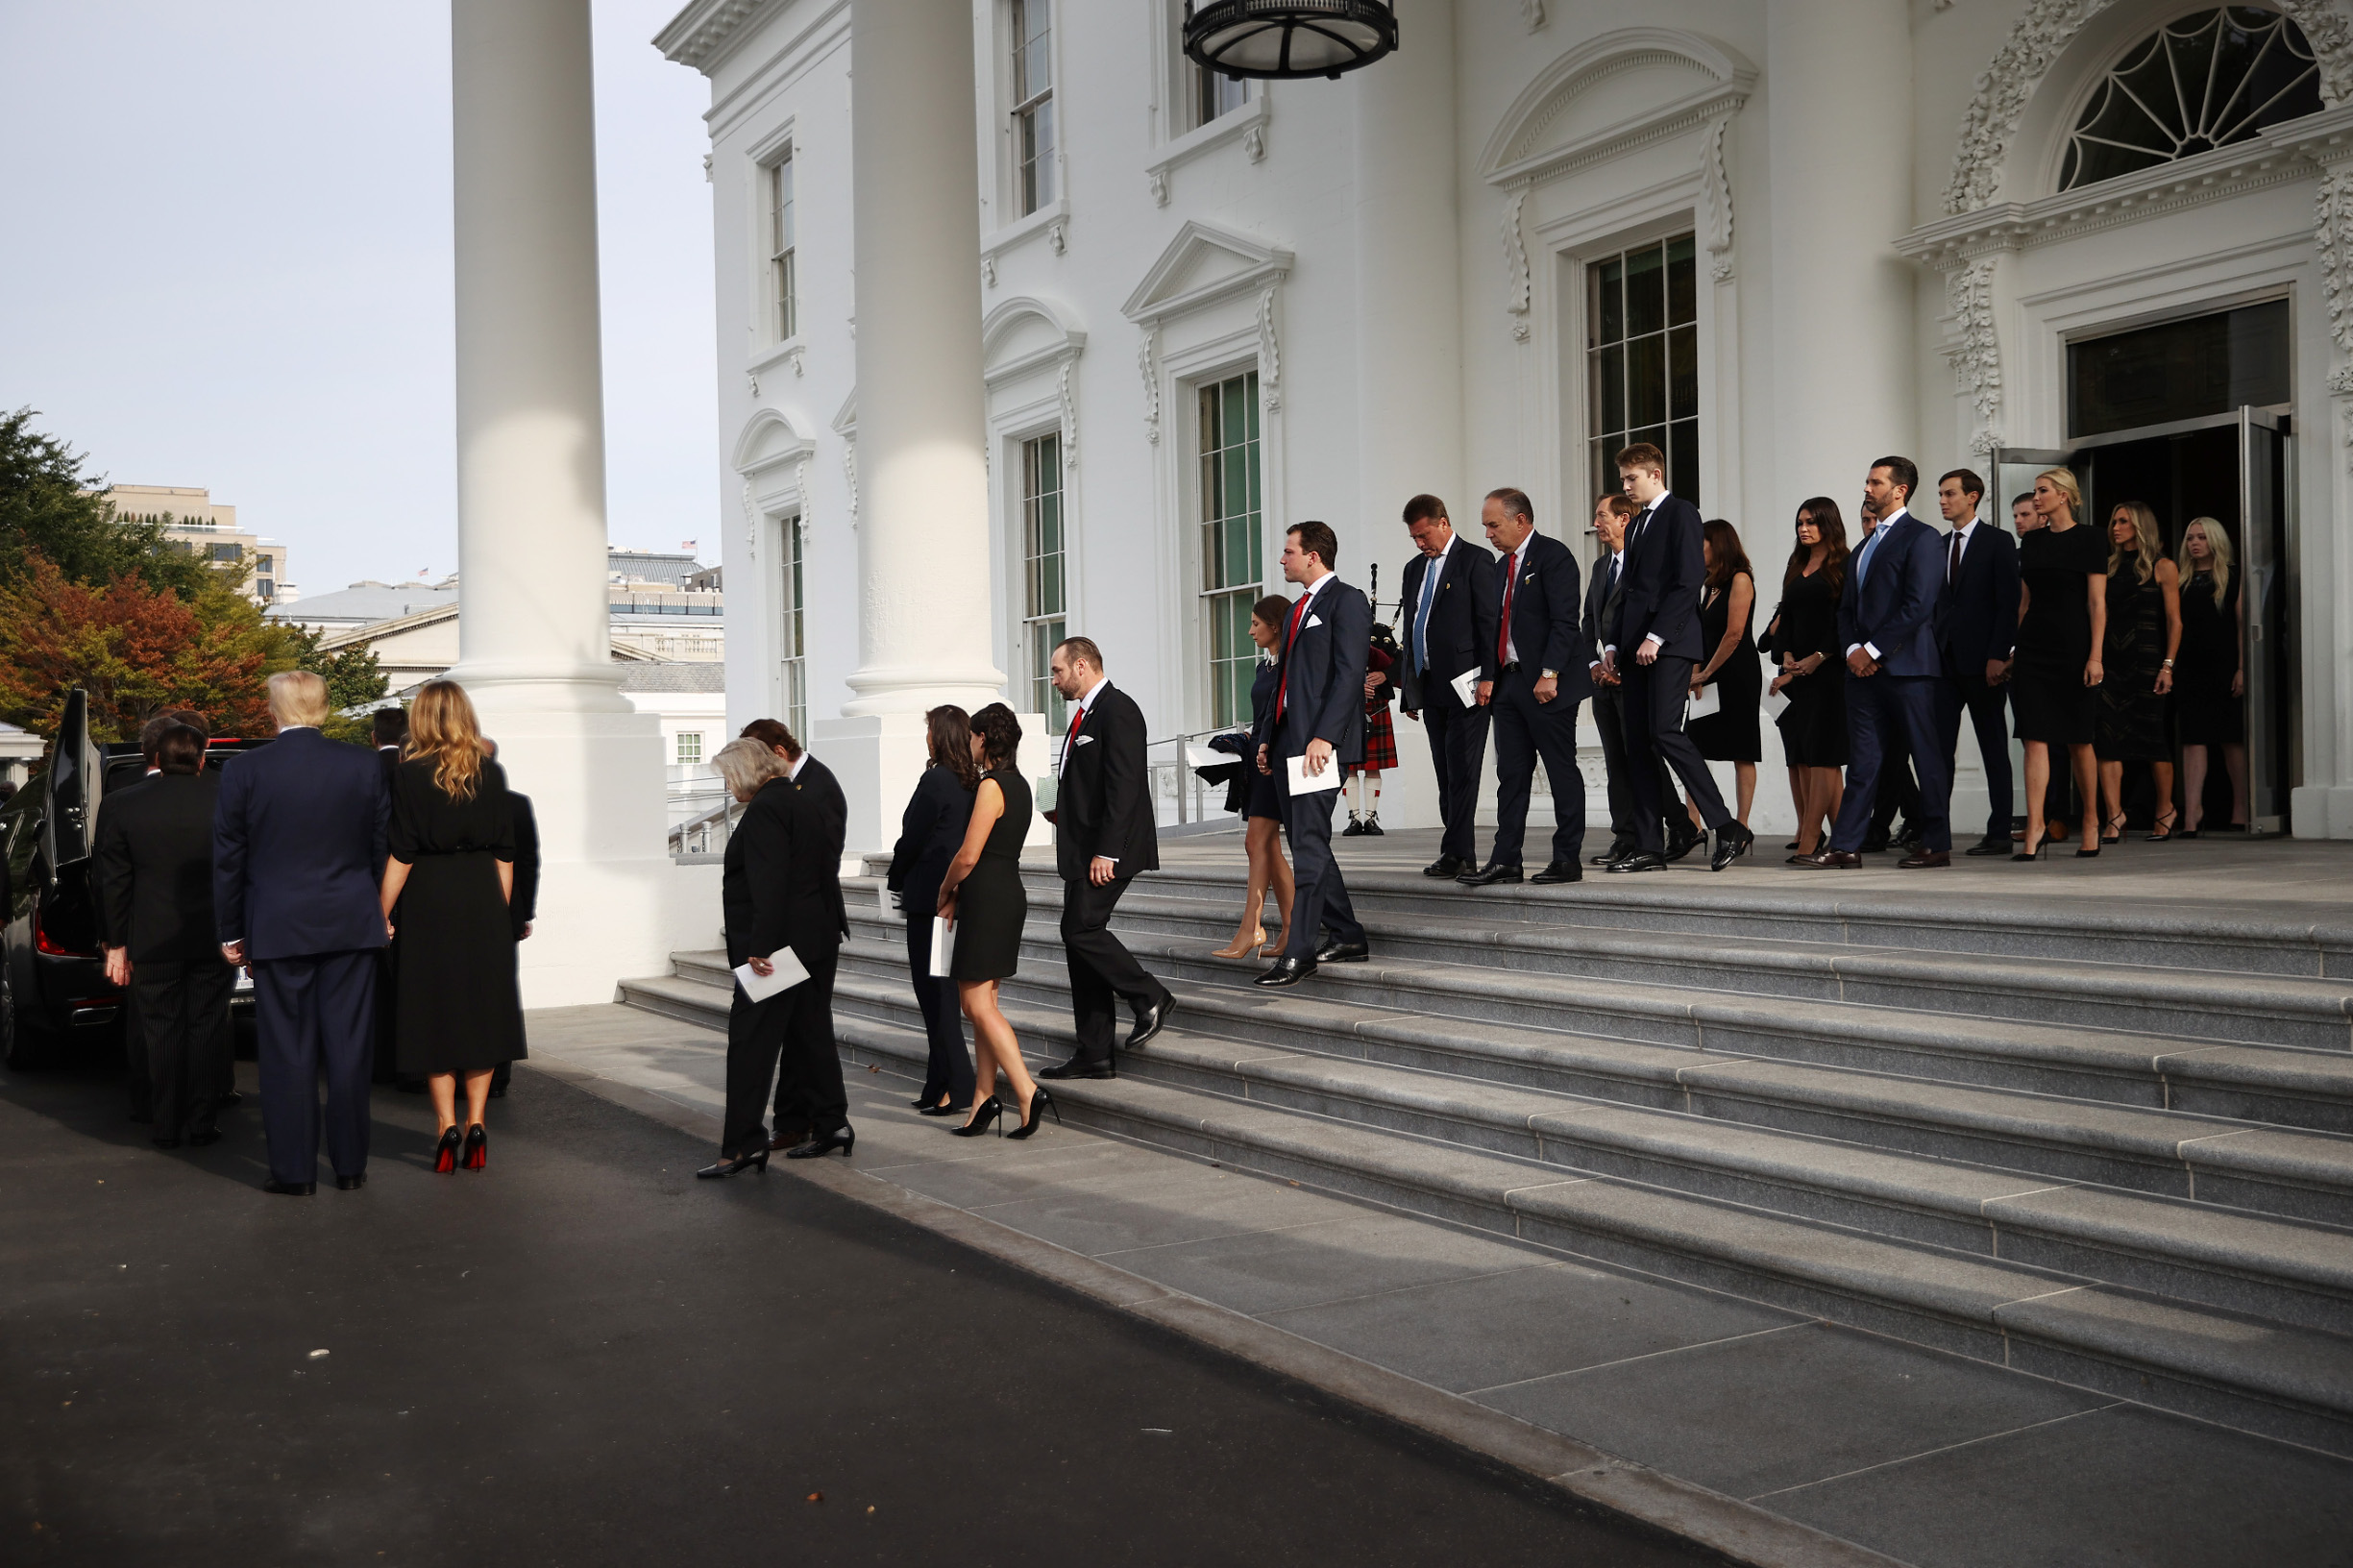 """WASHINGTON, DC - AUGUST 21: U.S. President Donald Trump (L) and First Lady Melania Trump are joined by members of the Trump family as Robert Trump's casket is loaded into a hearse at the North Portico of the White House following his funeral service on August 21, 2020 in Washington, DC. Robert Trump passed away on August 15 at the age of 71. In a statement, President Trump wrote, """"He was not just my brother, he was my best friend."""